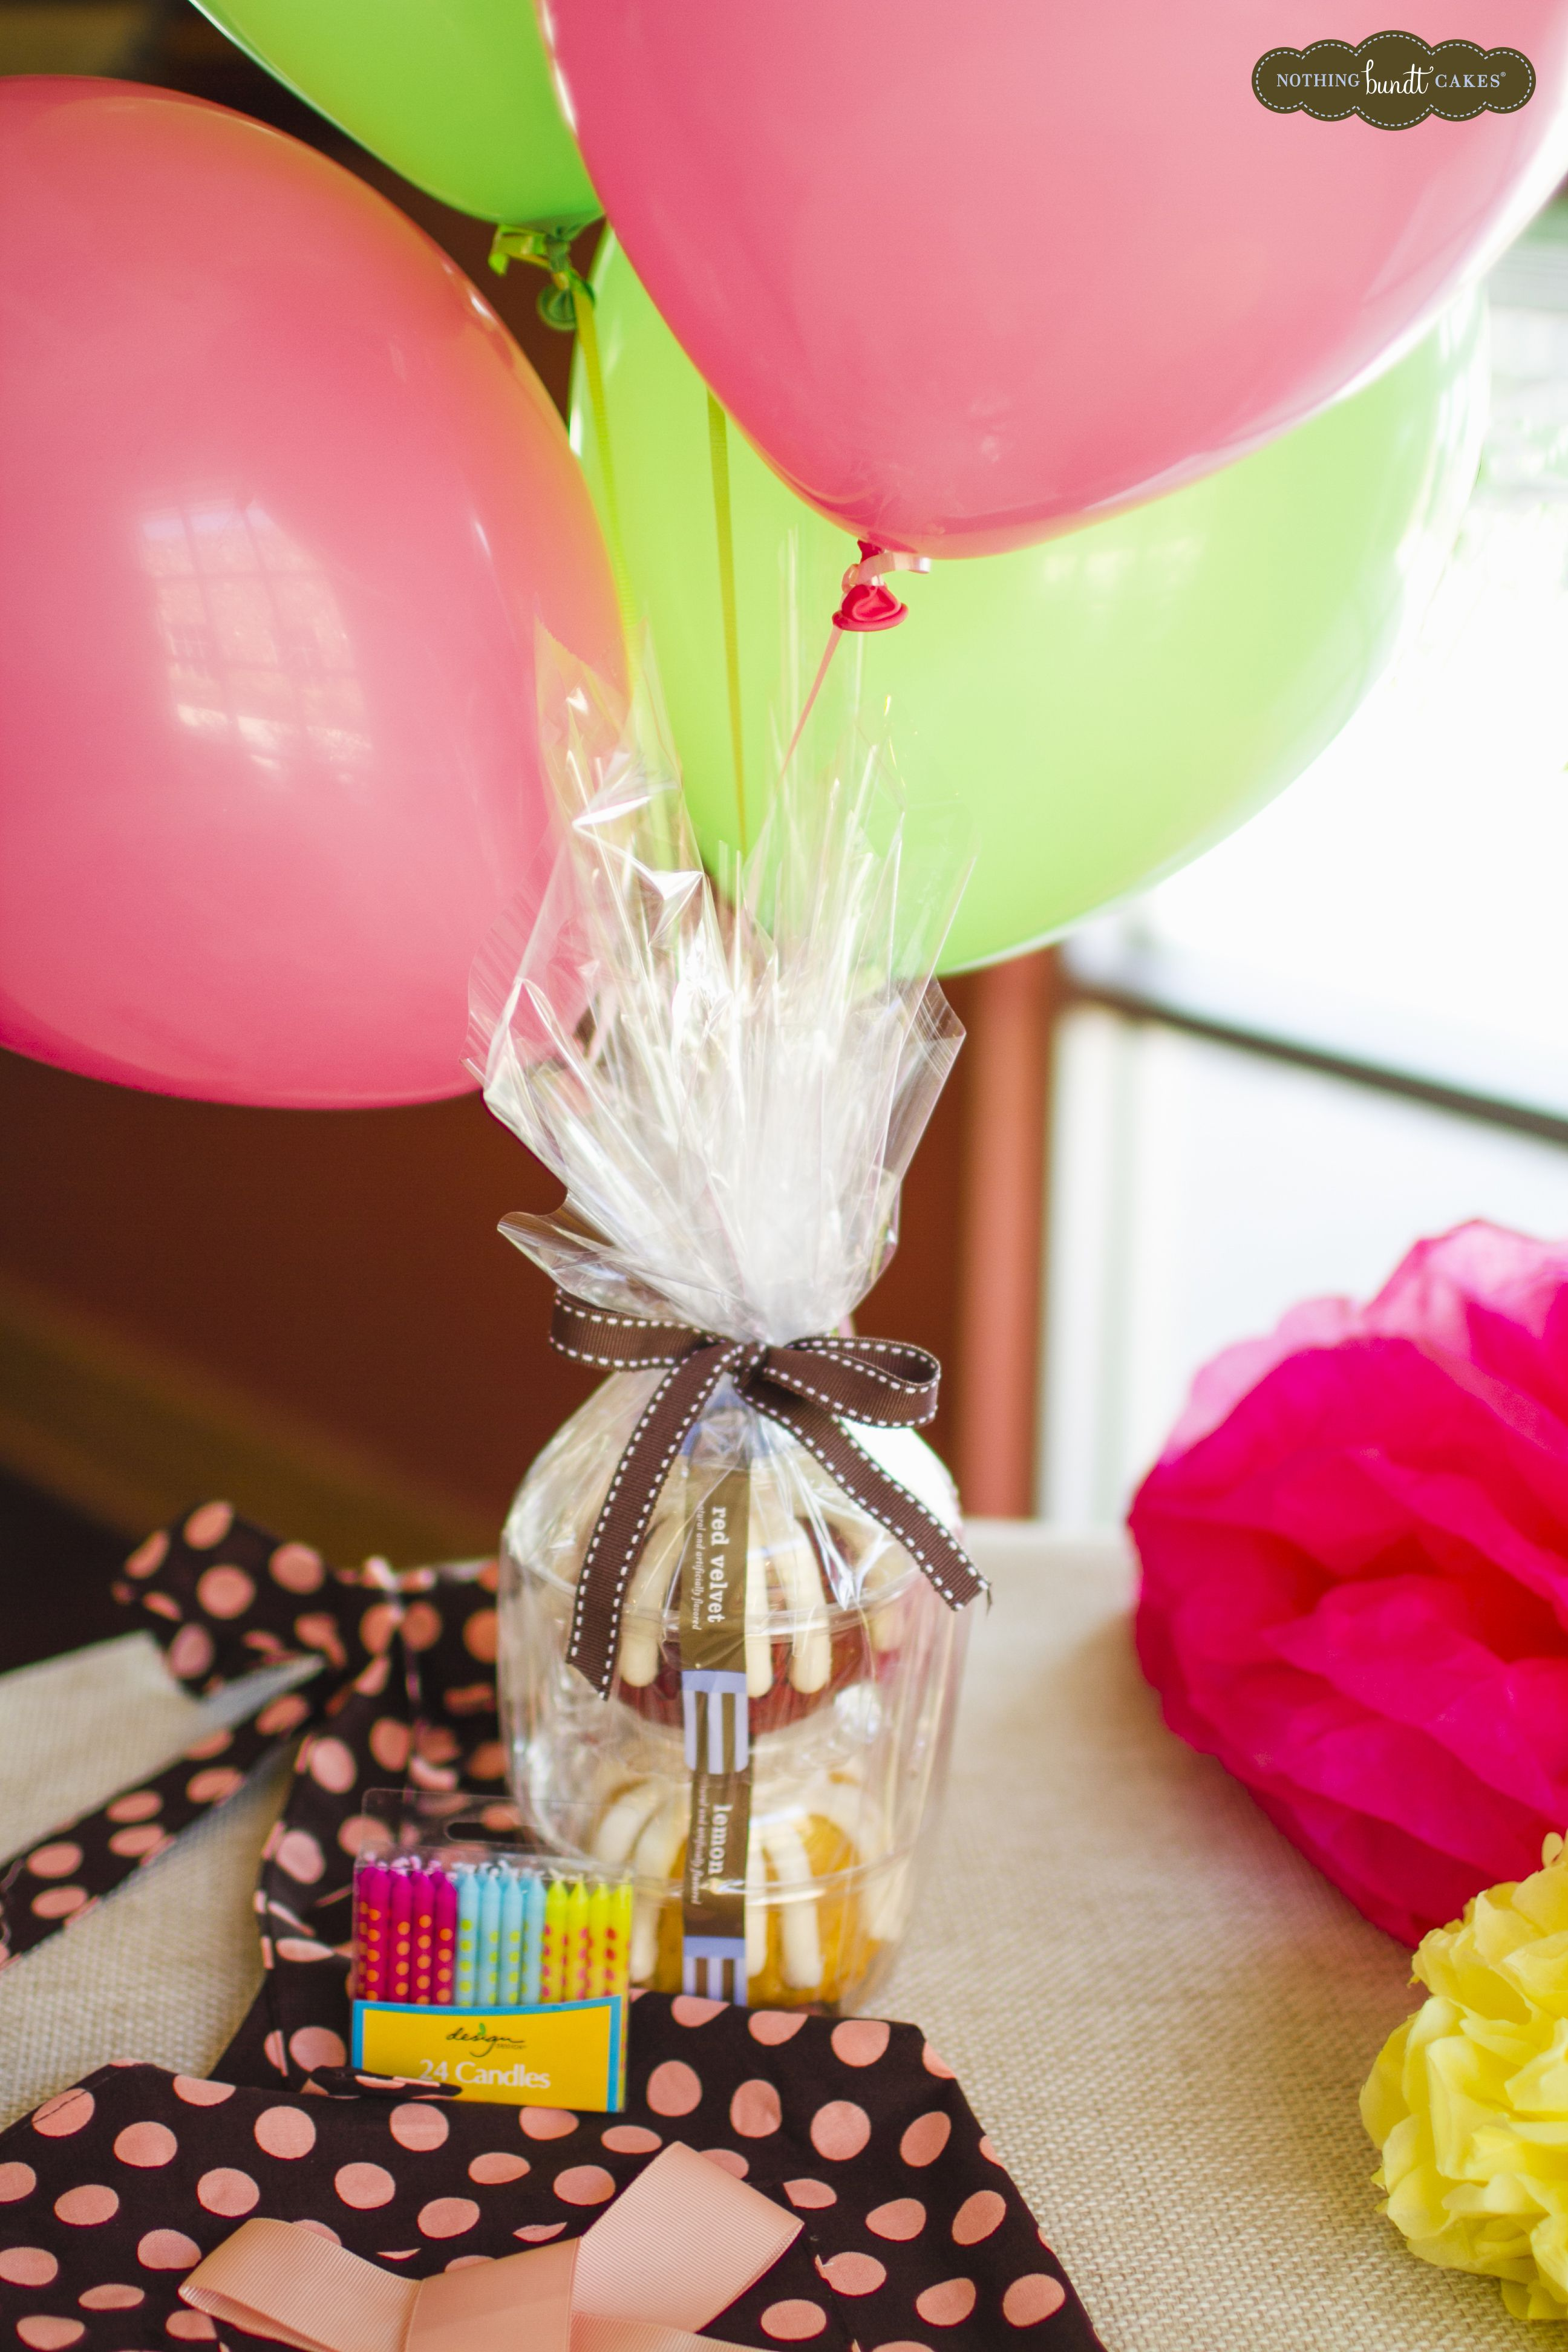 Nothing Bundt Cakes Is The Sweetest Birthday Treat Around Gift Your